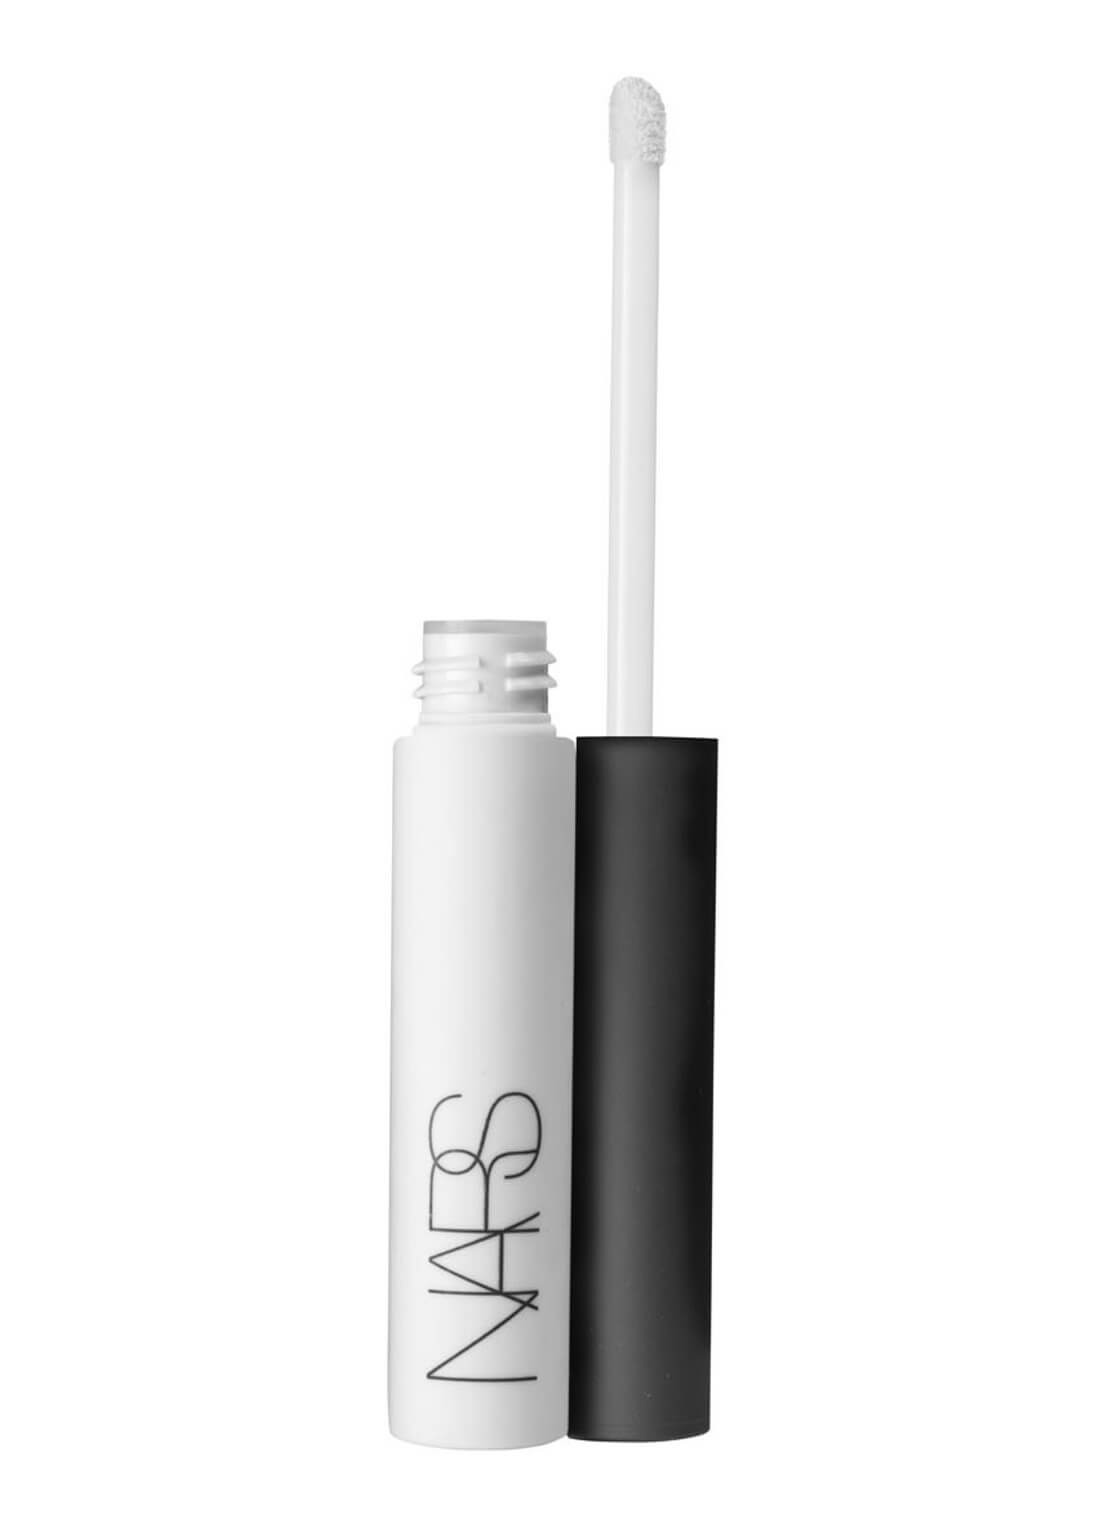 NARS Smudge Proof Eyeshadow Base Primer